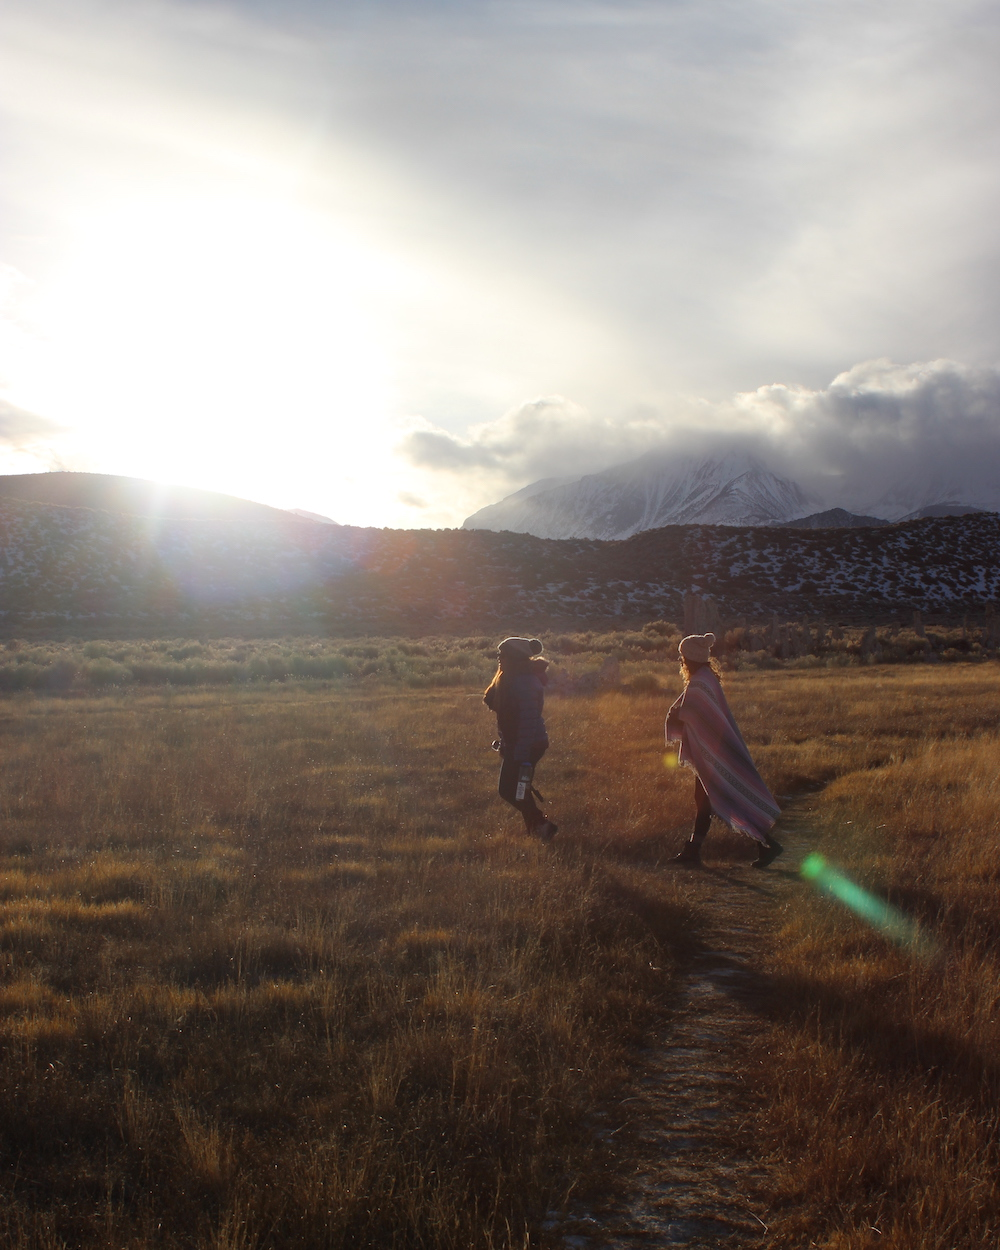 women at mono lake area at golden hour